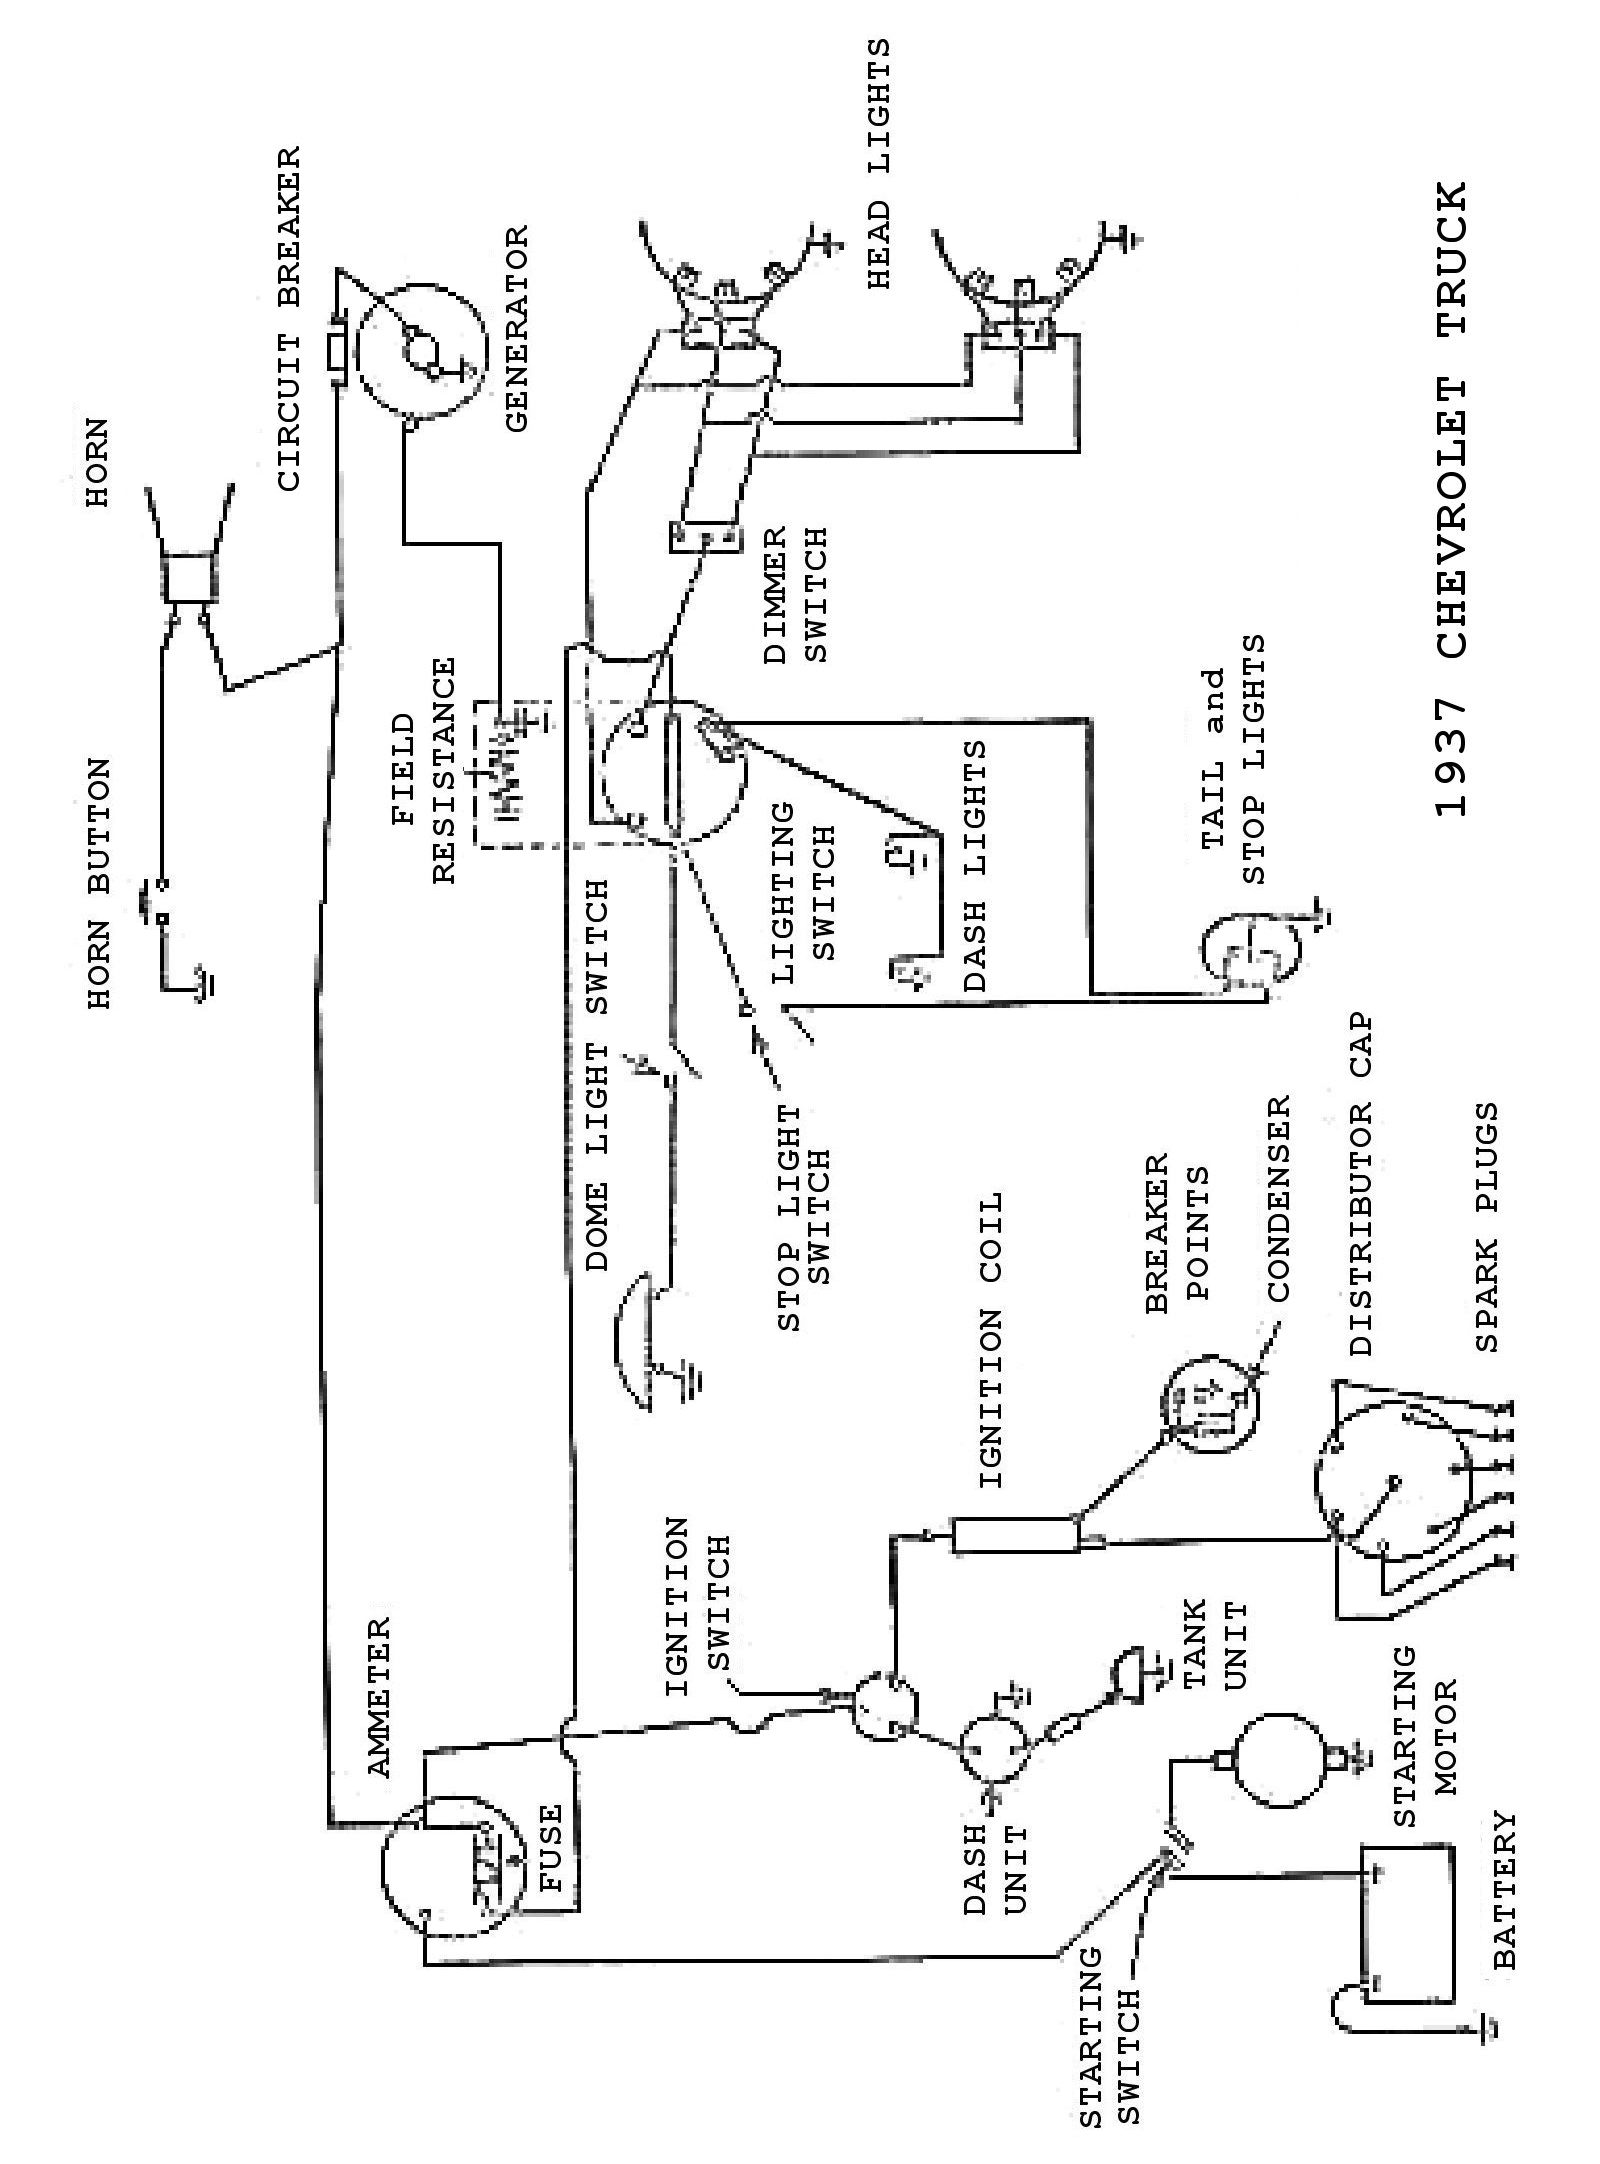 hight resolution of ignition circuit diagram for the 1940 47 cadillac all models charging circuit diagram for the 1940 49 buick all models